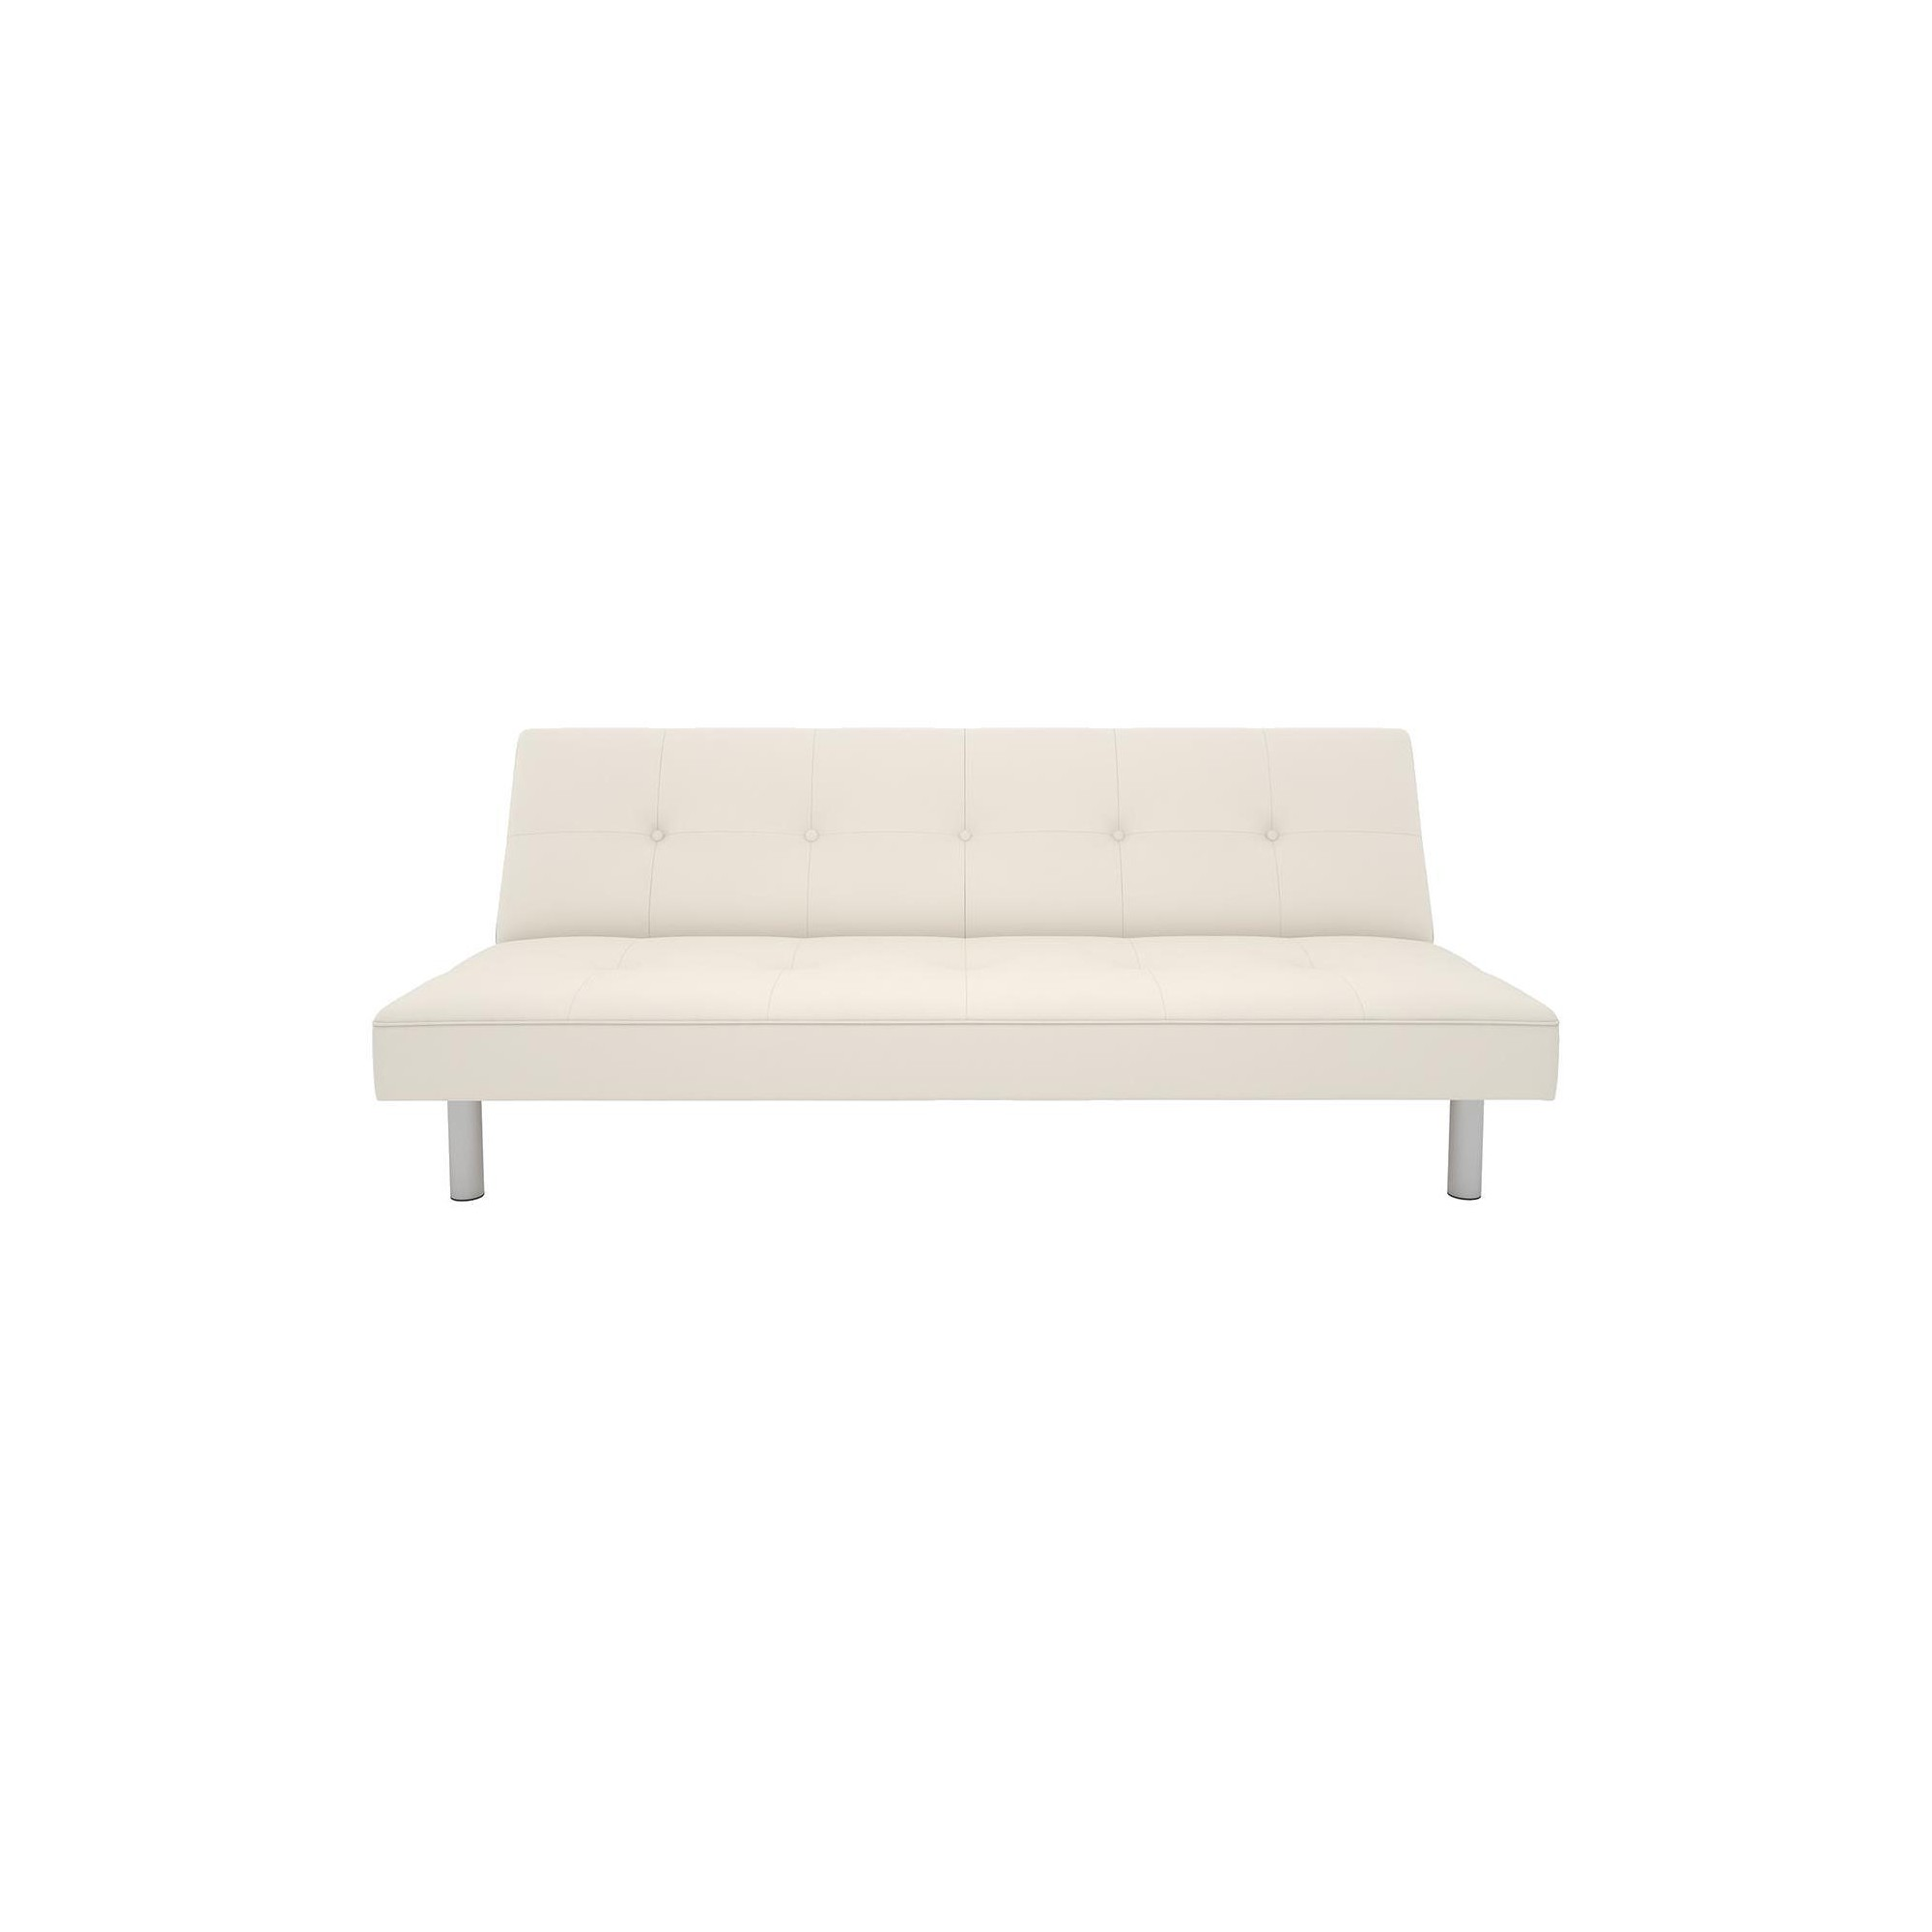 Nola Faux Leather Futon White Dorel Home Products